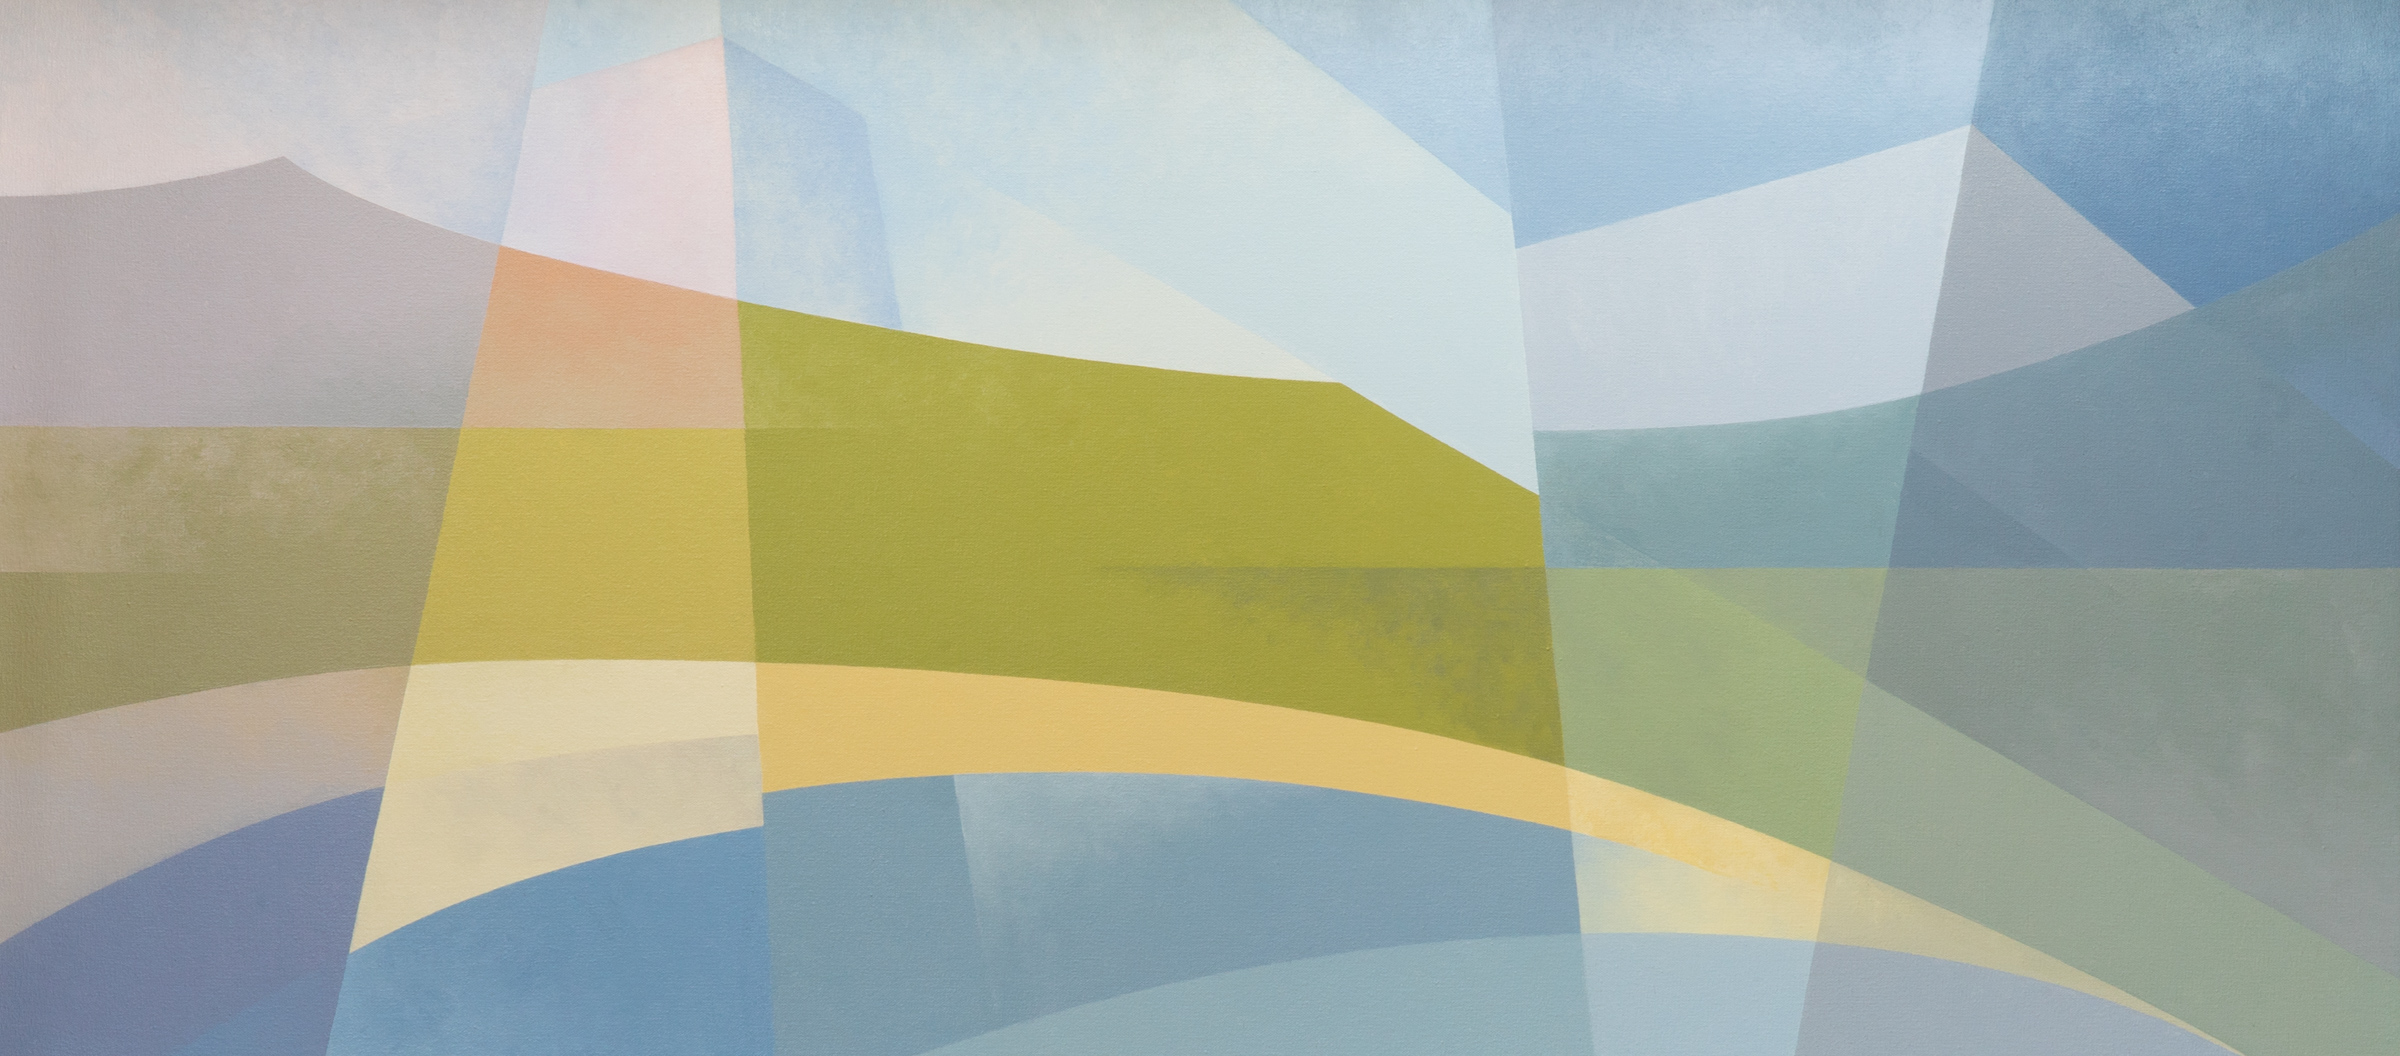 abstract landscape painting with curves, angles and pastel tones